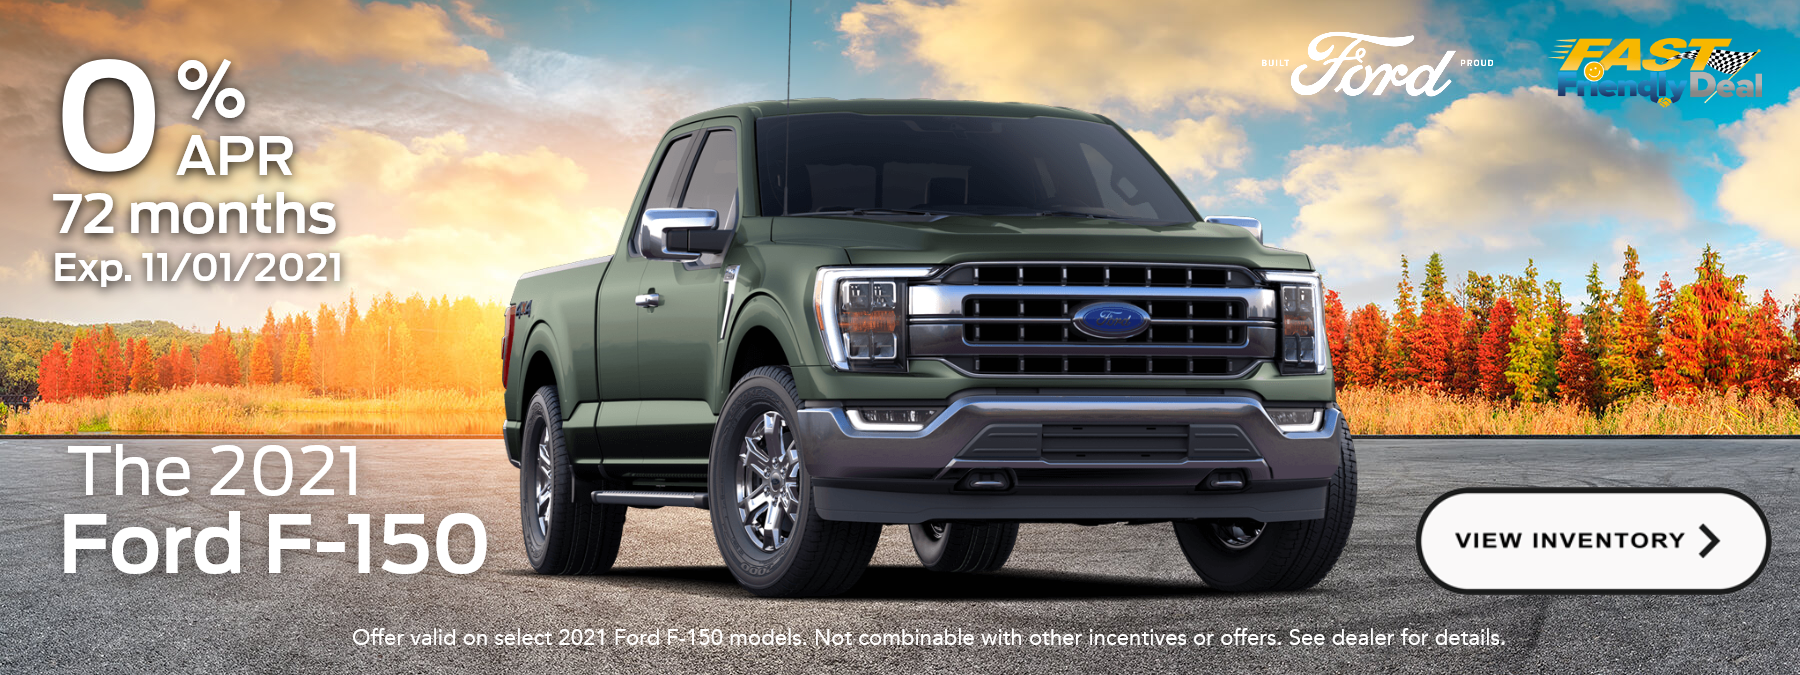 0% for 72 months APR- Ford F-150 special